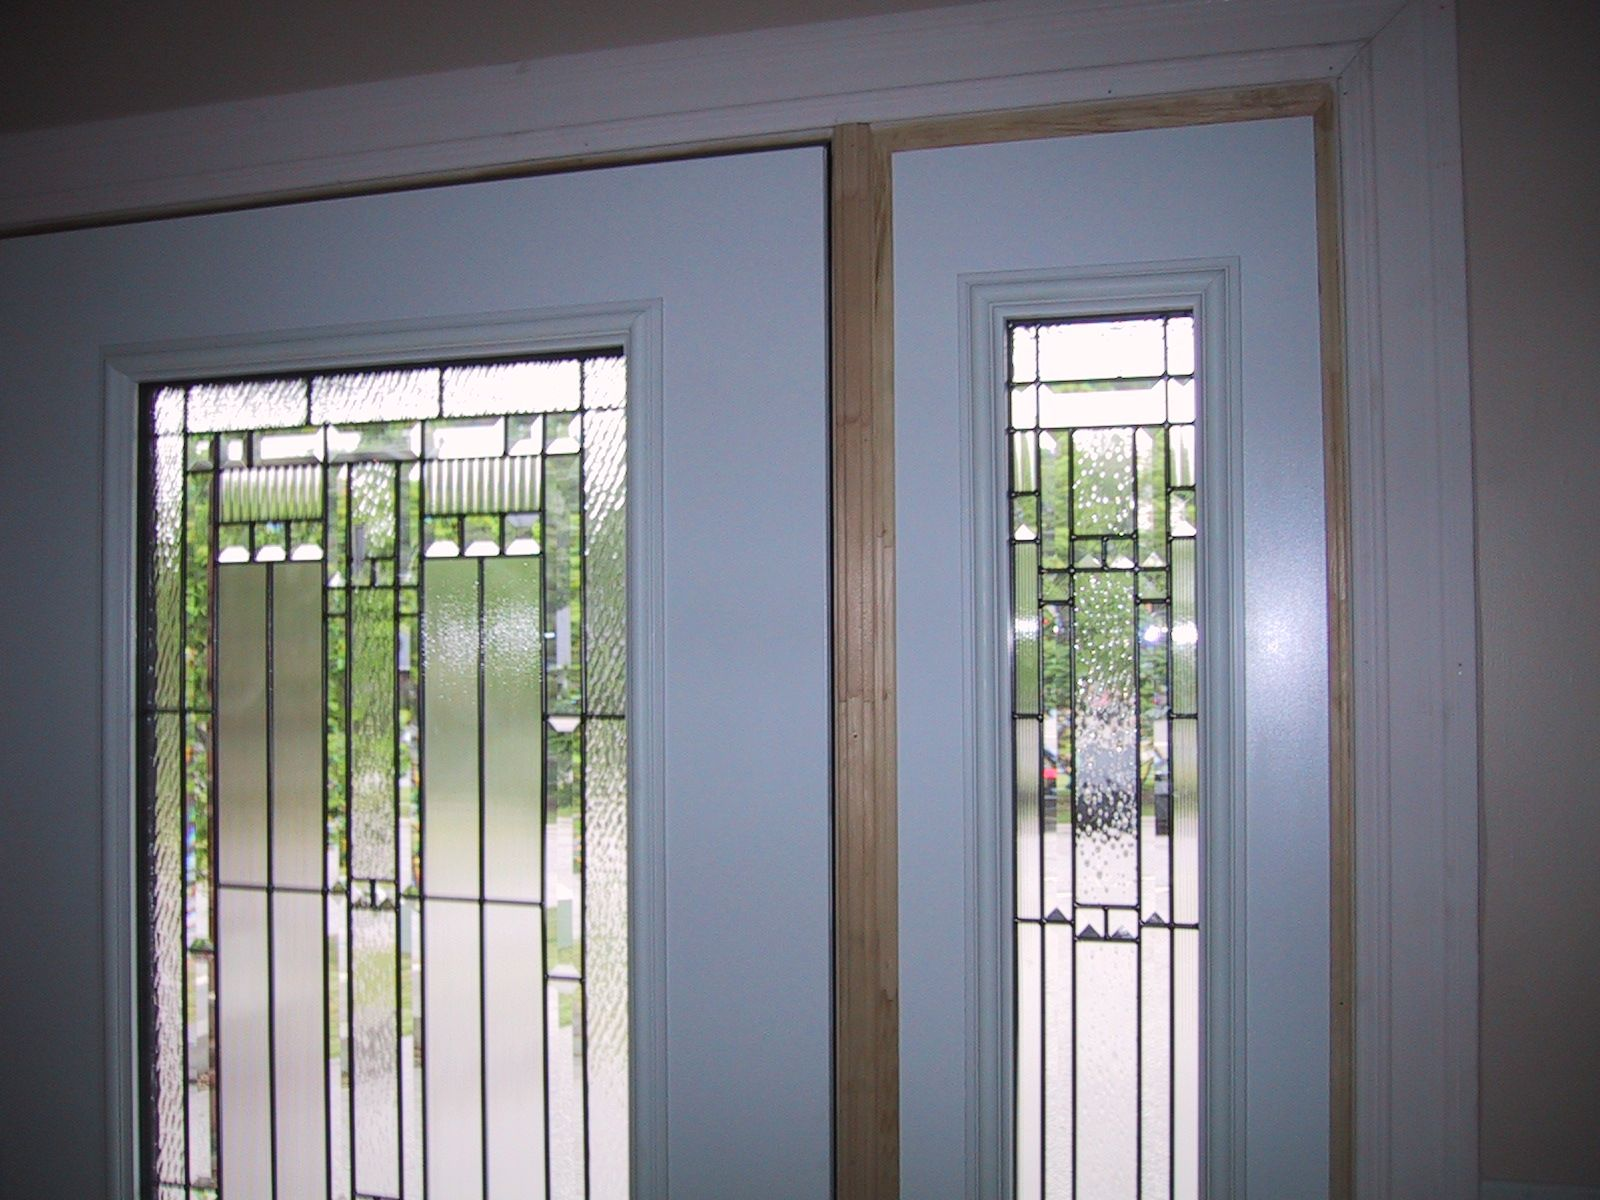 Exterior Door Glass Inserts the glass inserts where you cannot